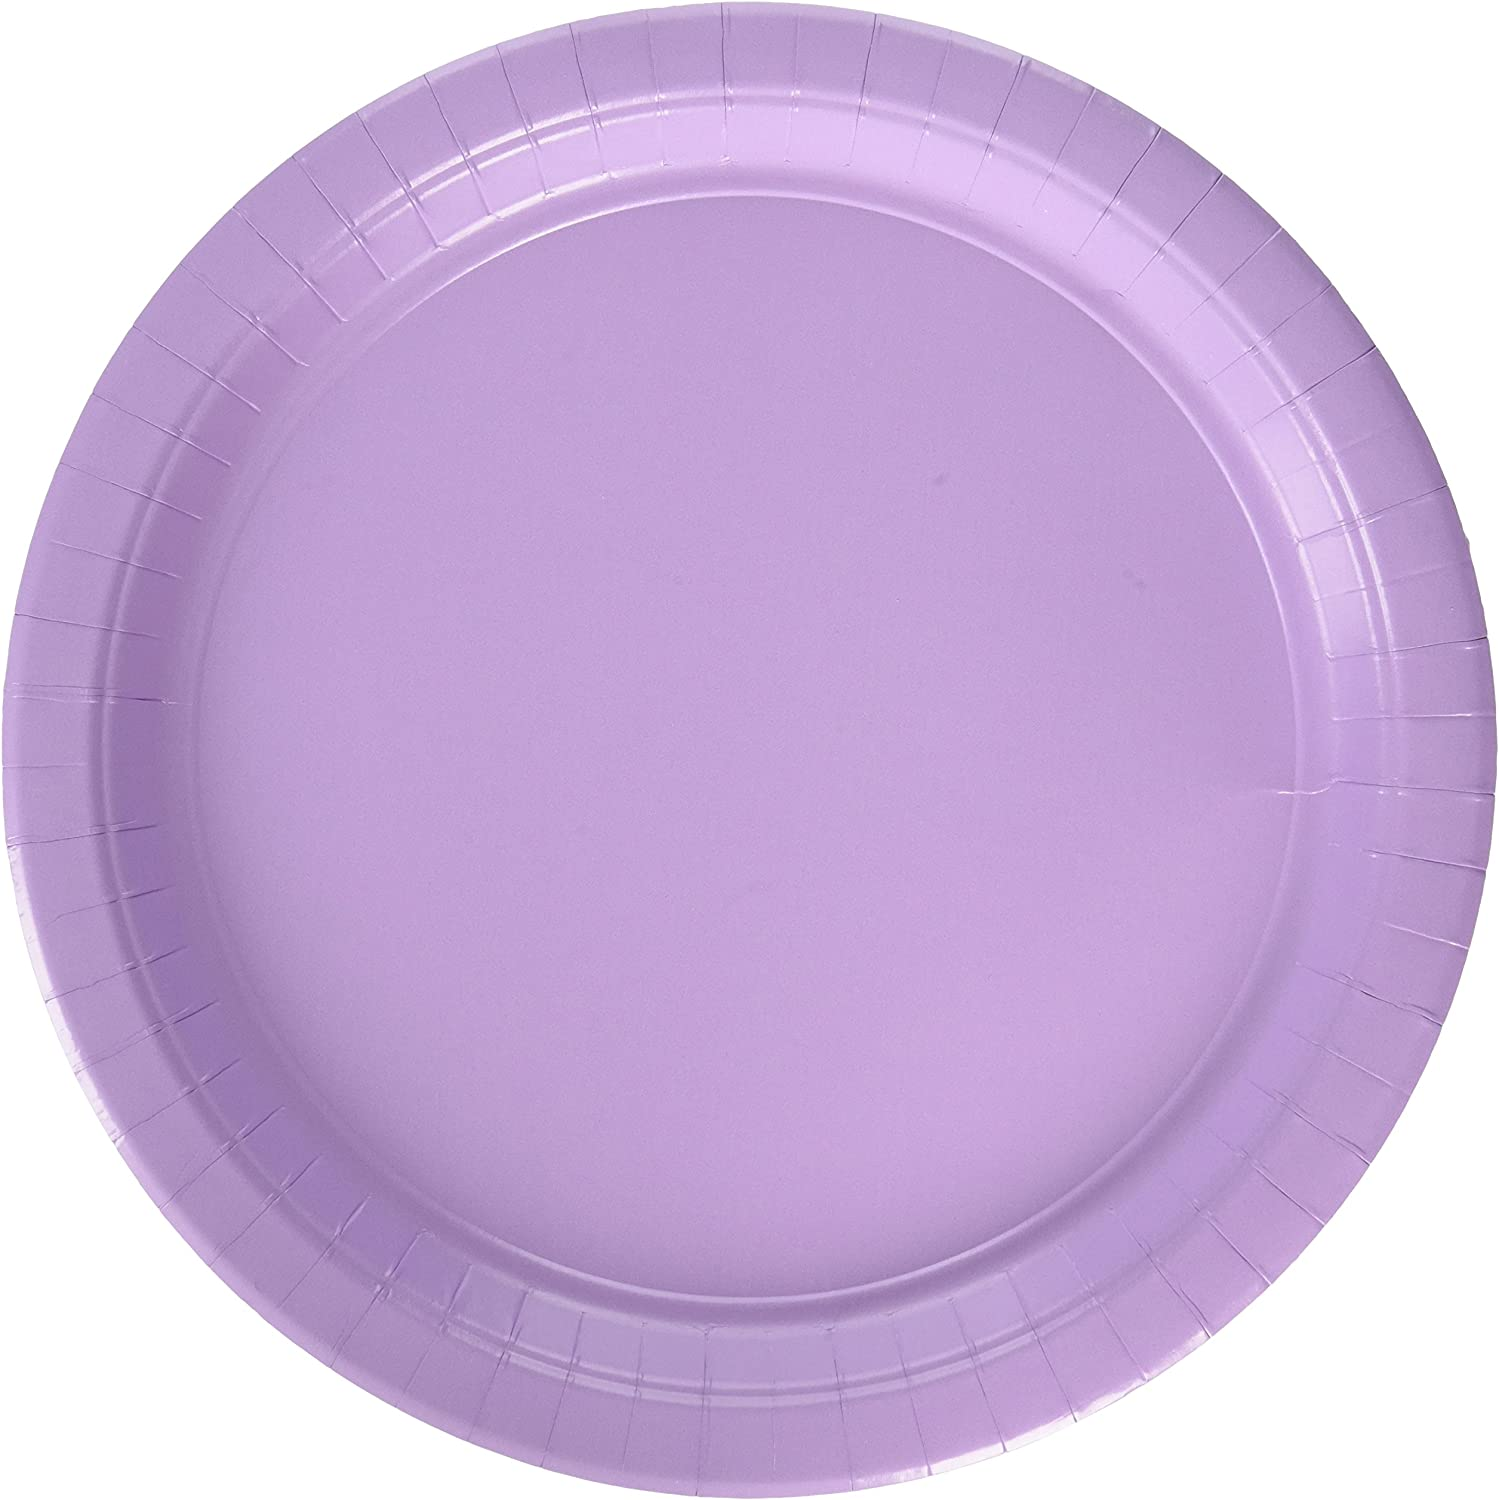 Lavender Round Paper Plates   10.5    Party Supply   120 ct.